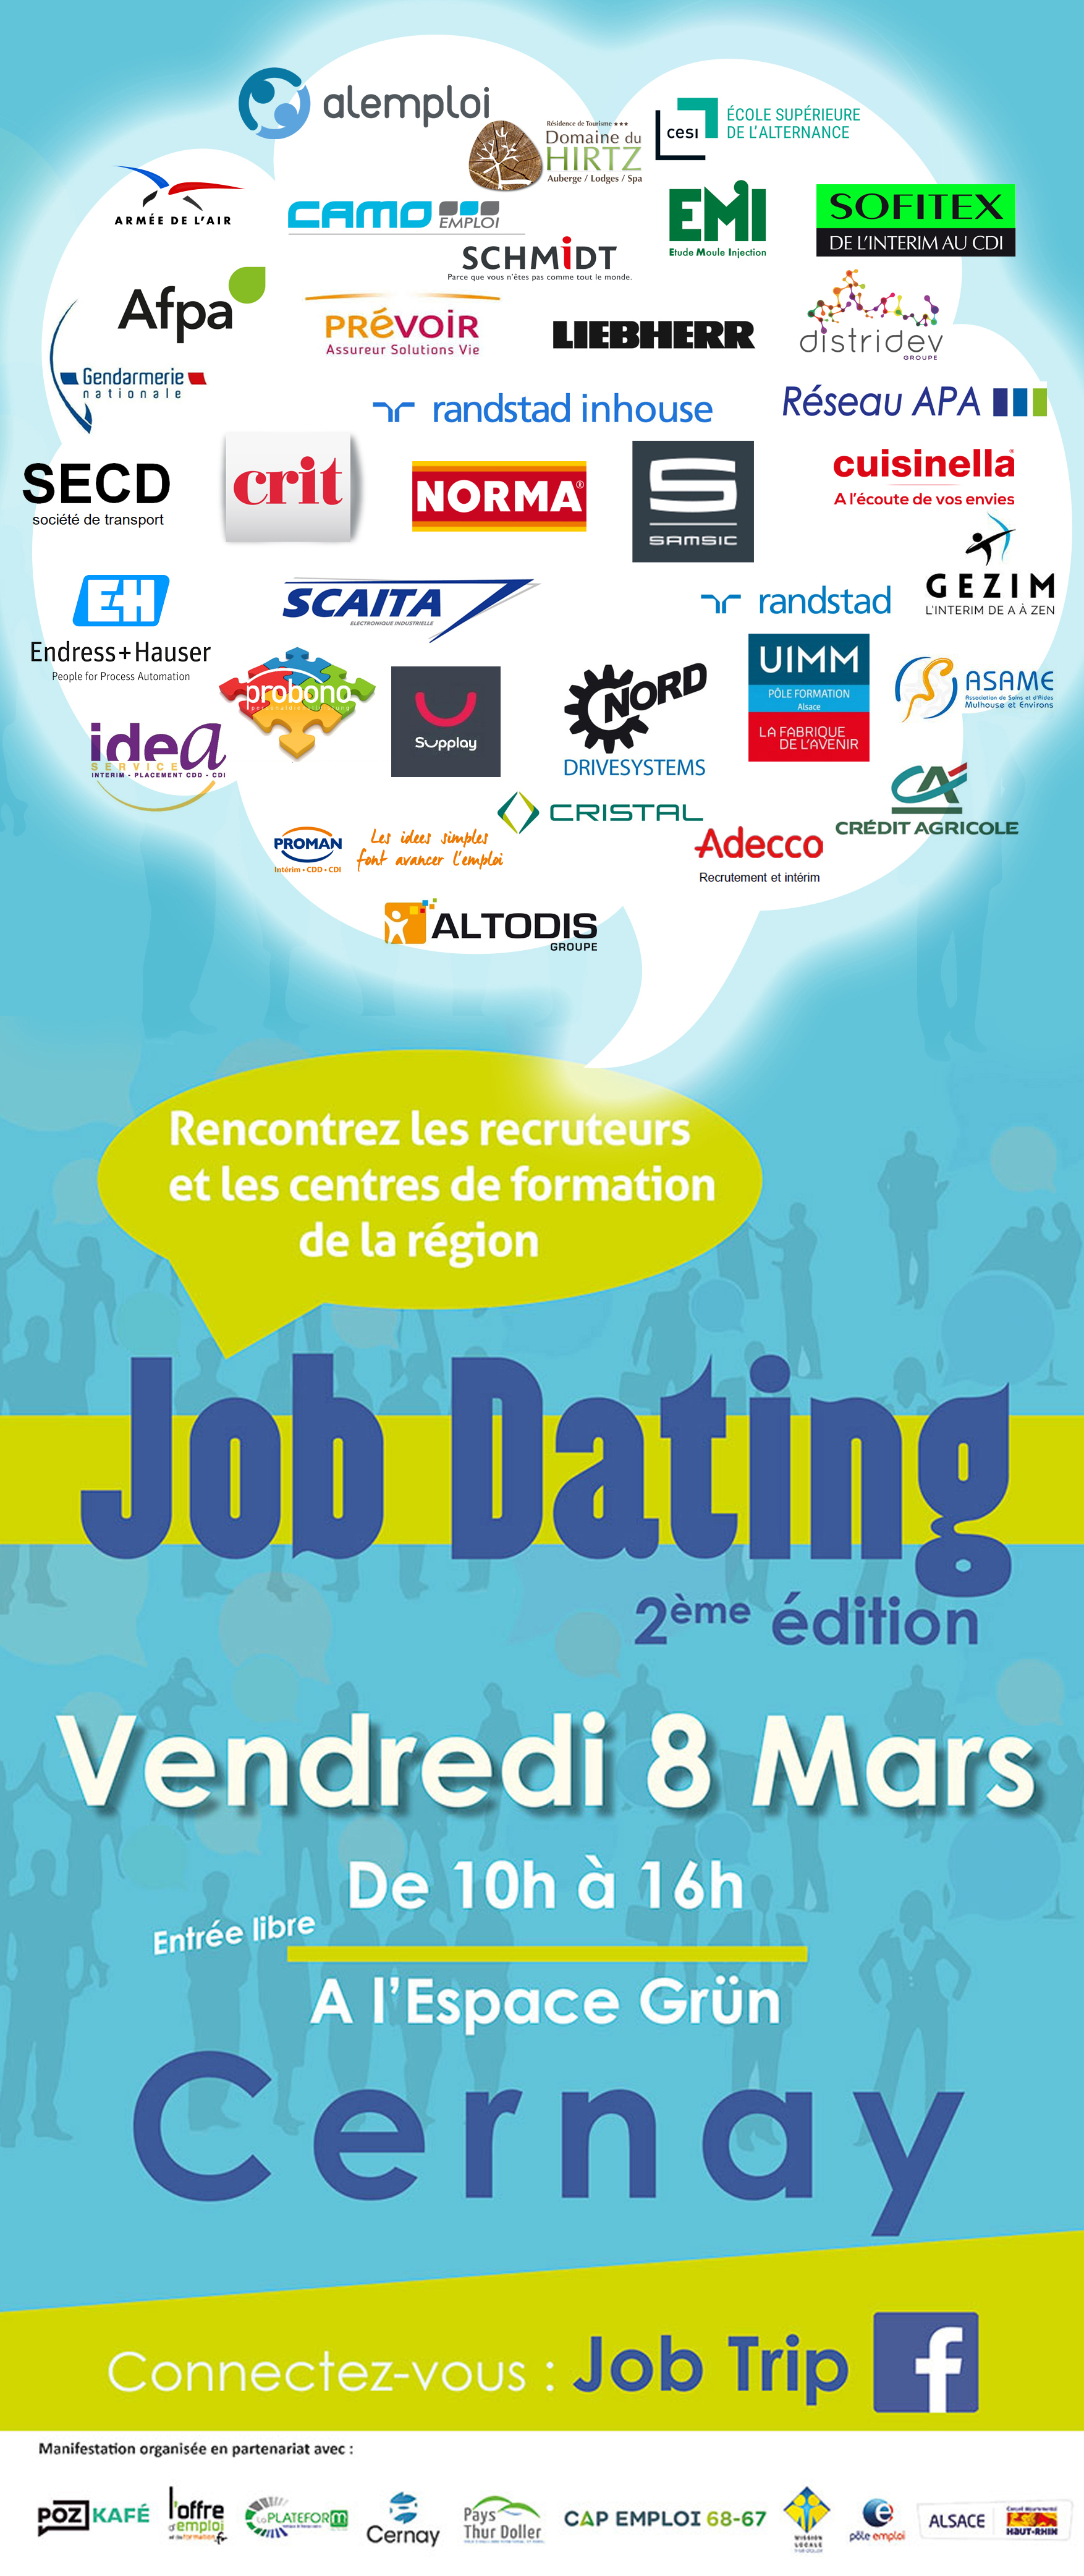 JOB DATING CERNAY LE 08 MARS 2019 recrute JOB DATING - CERNAY - le 08 MARS 2019